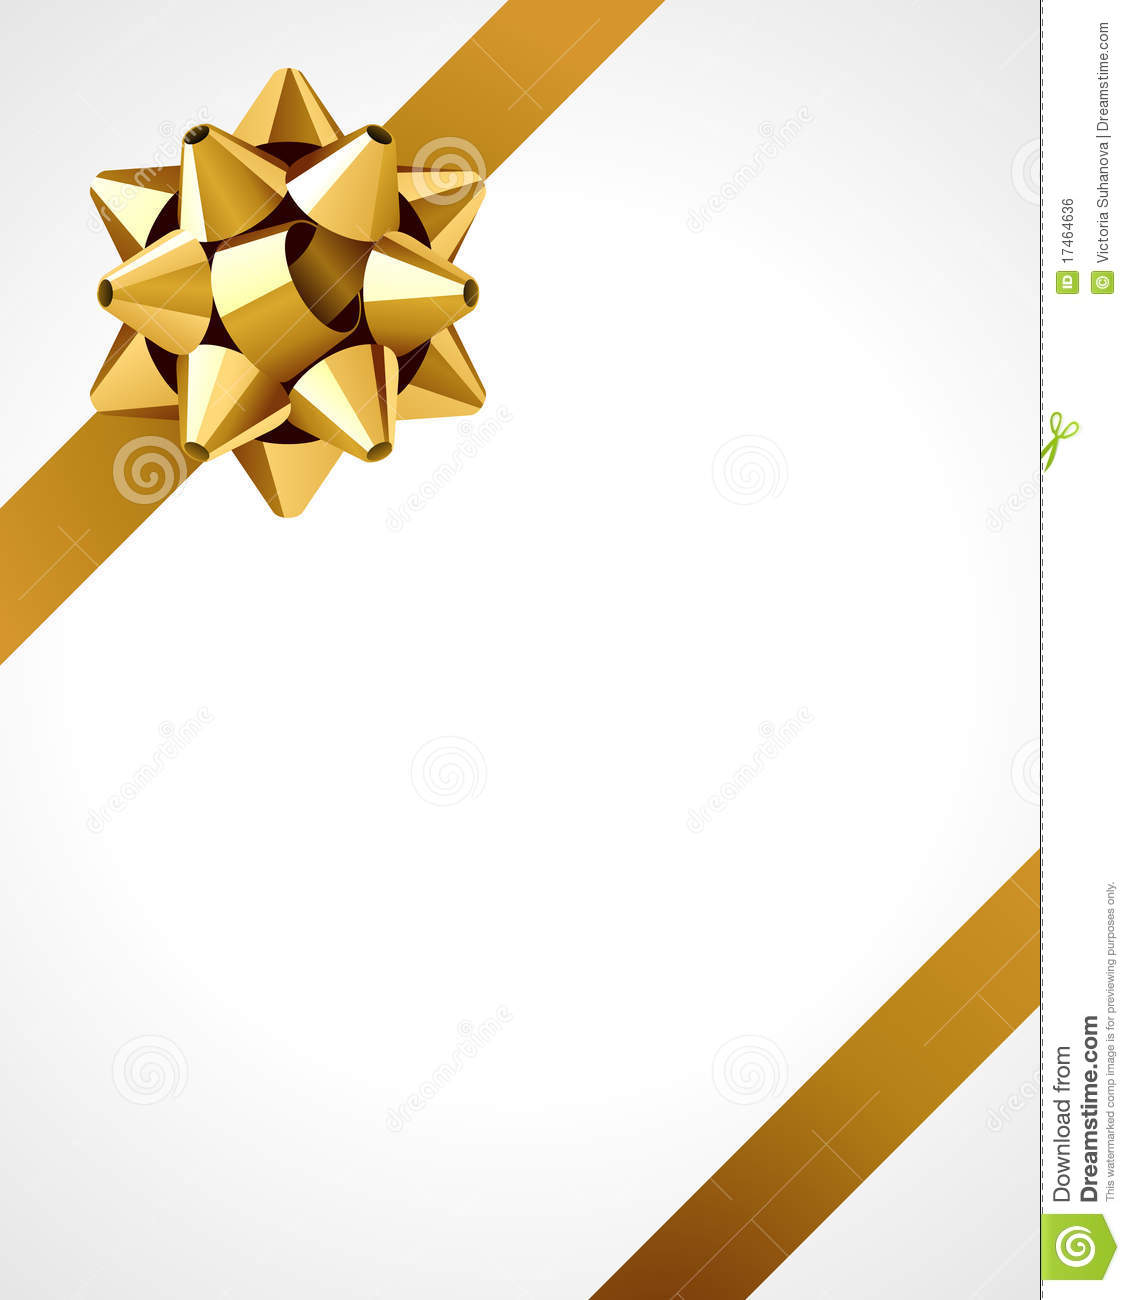 Wrapped Present Background Royalty Free Stock Image